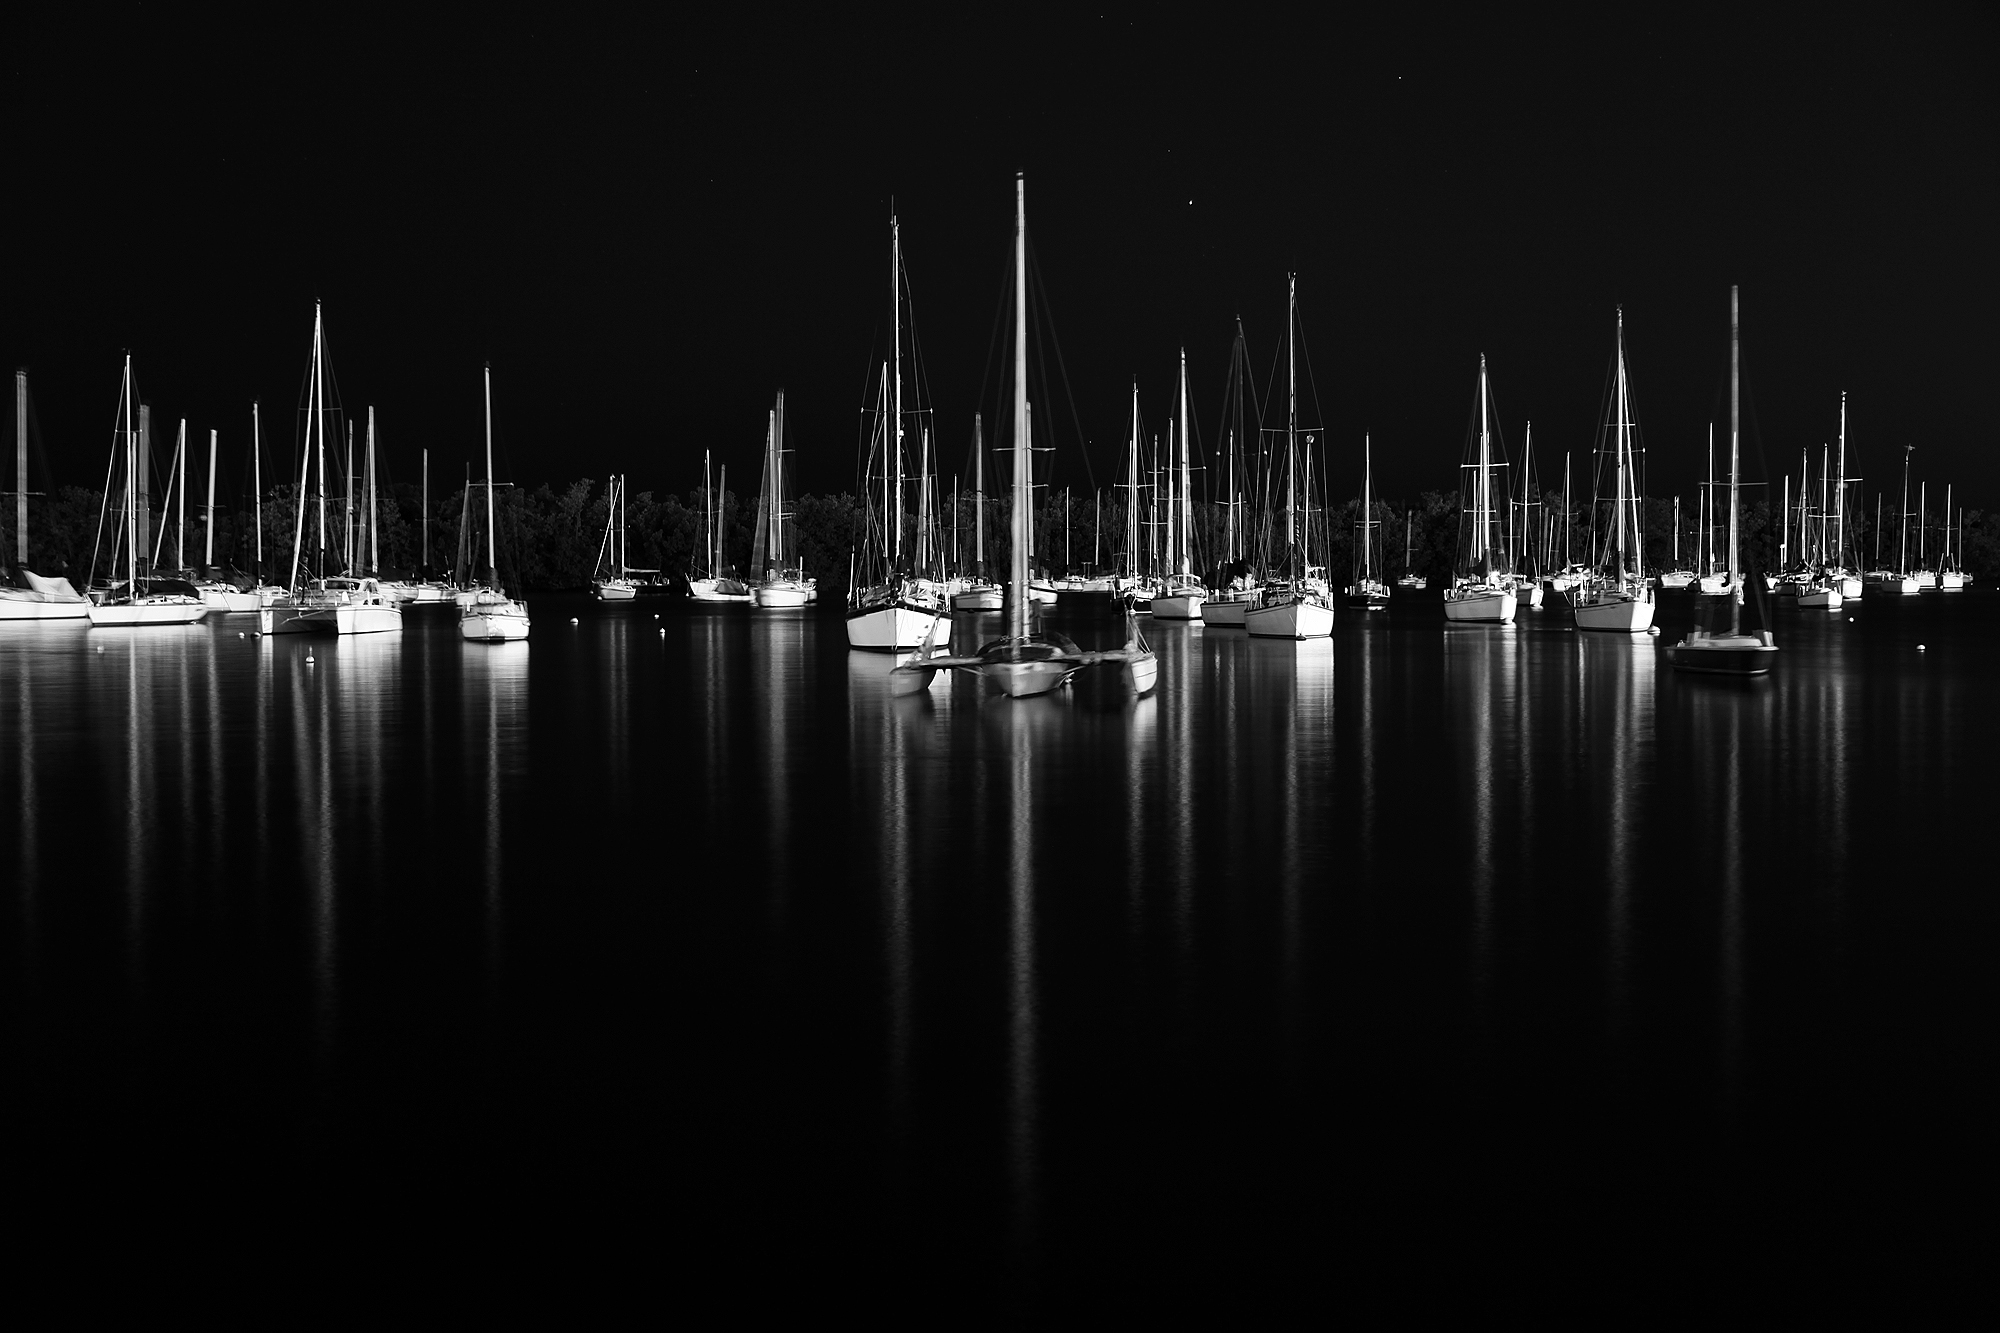 27 Barry_Greff_Sailboats_Ocean_Views.jpg